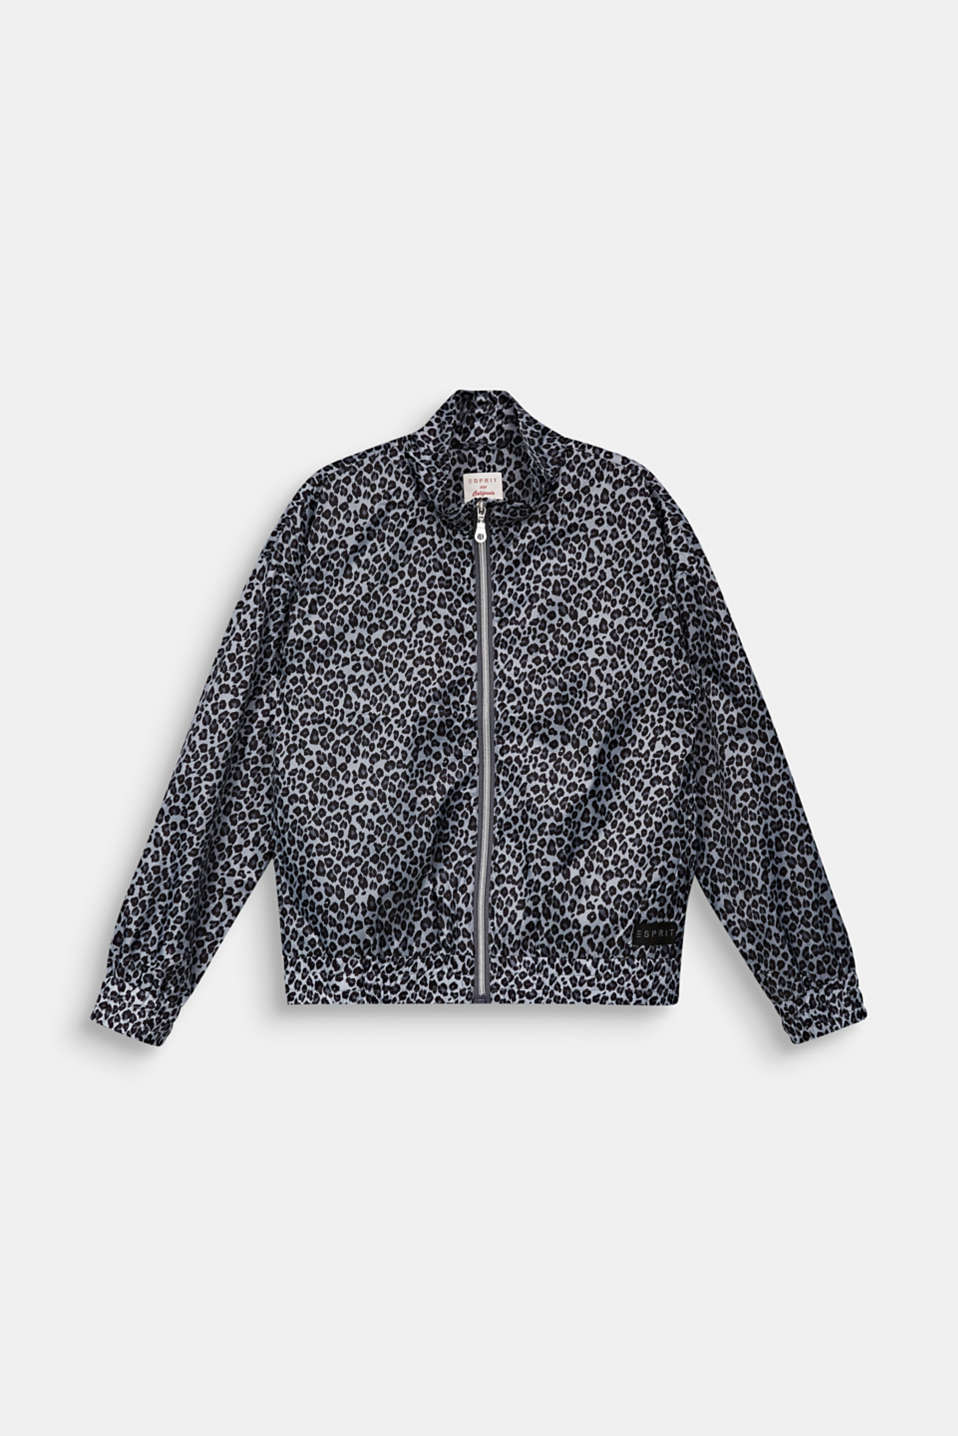 Esprit - Windbreaker with a leopard print